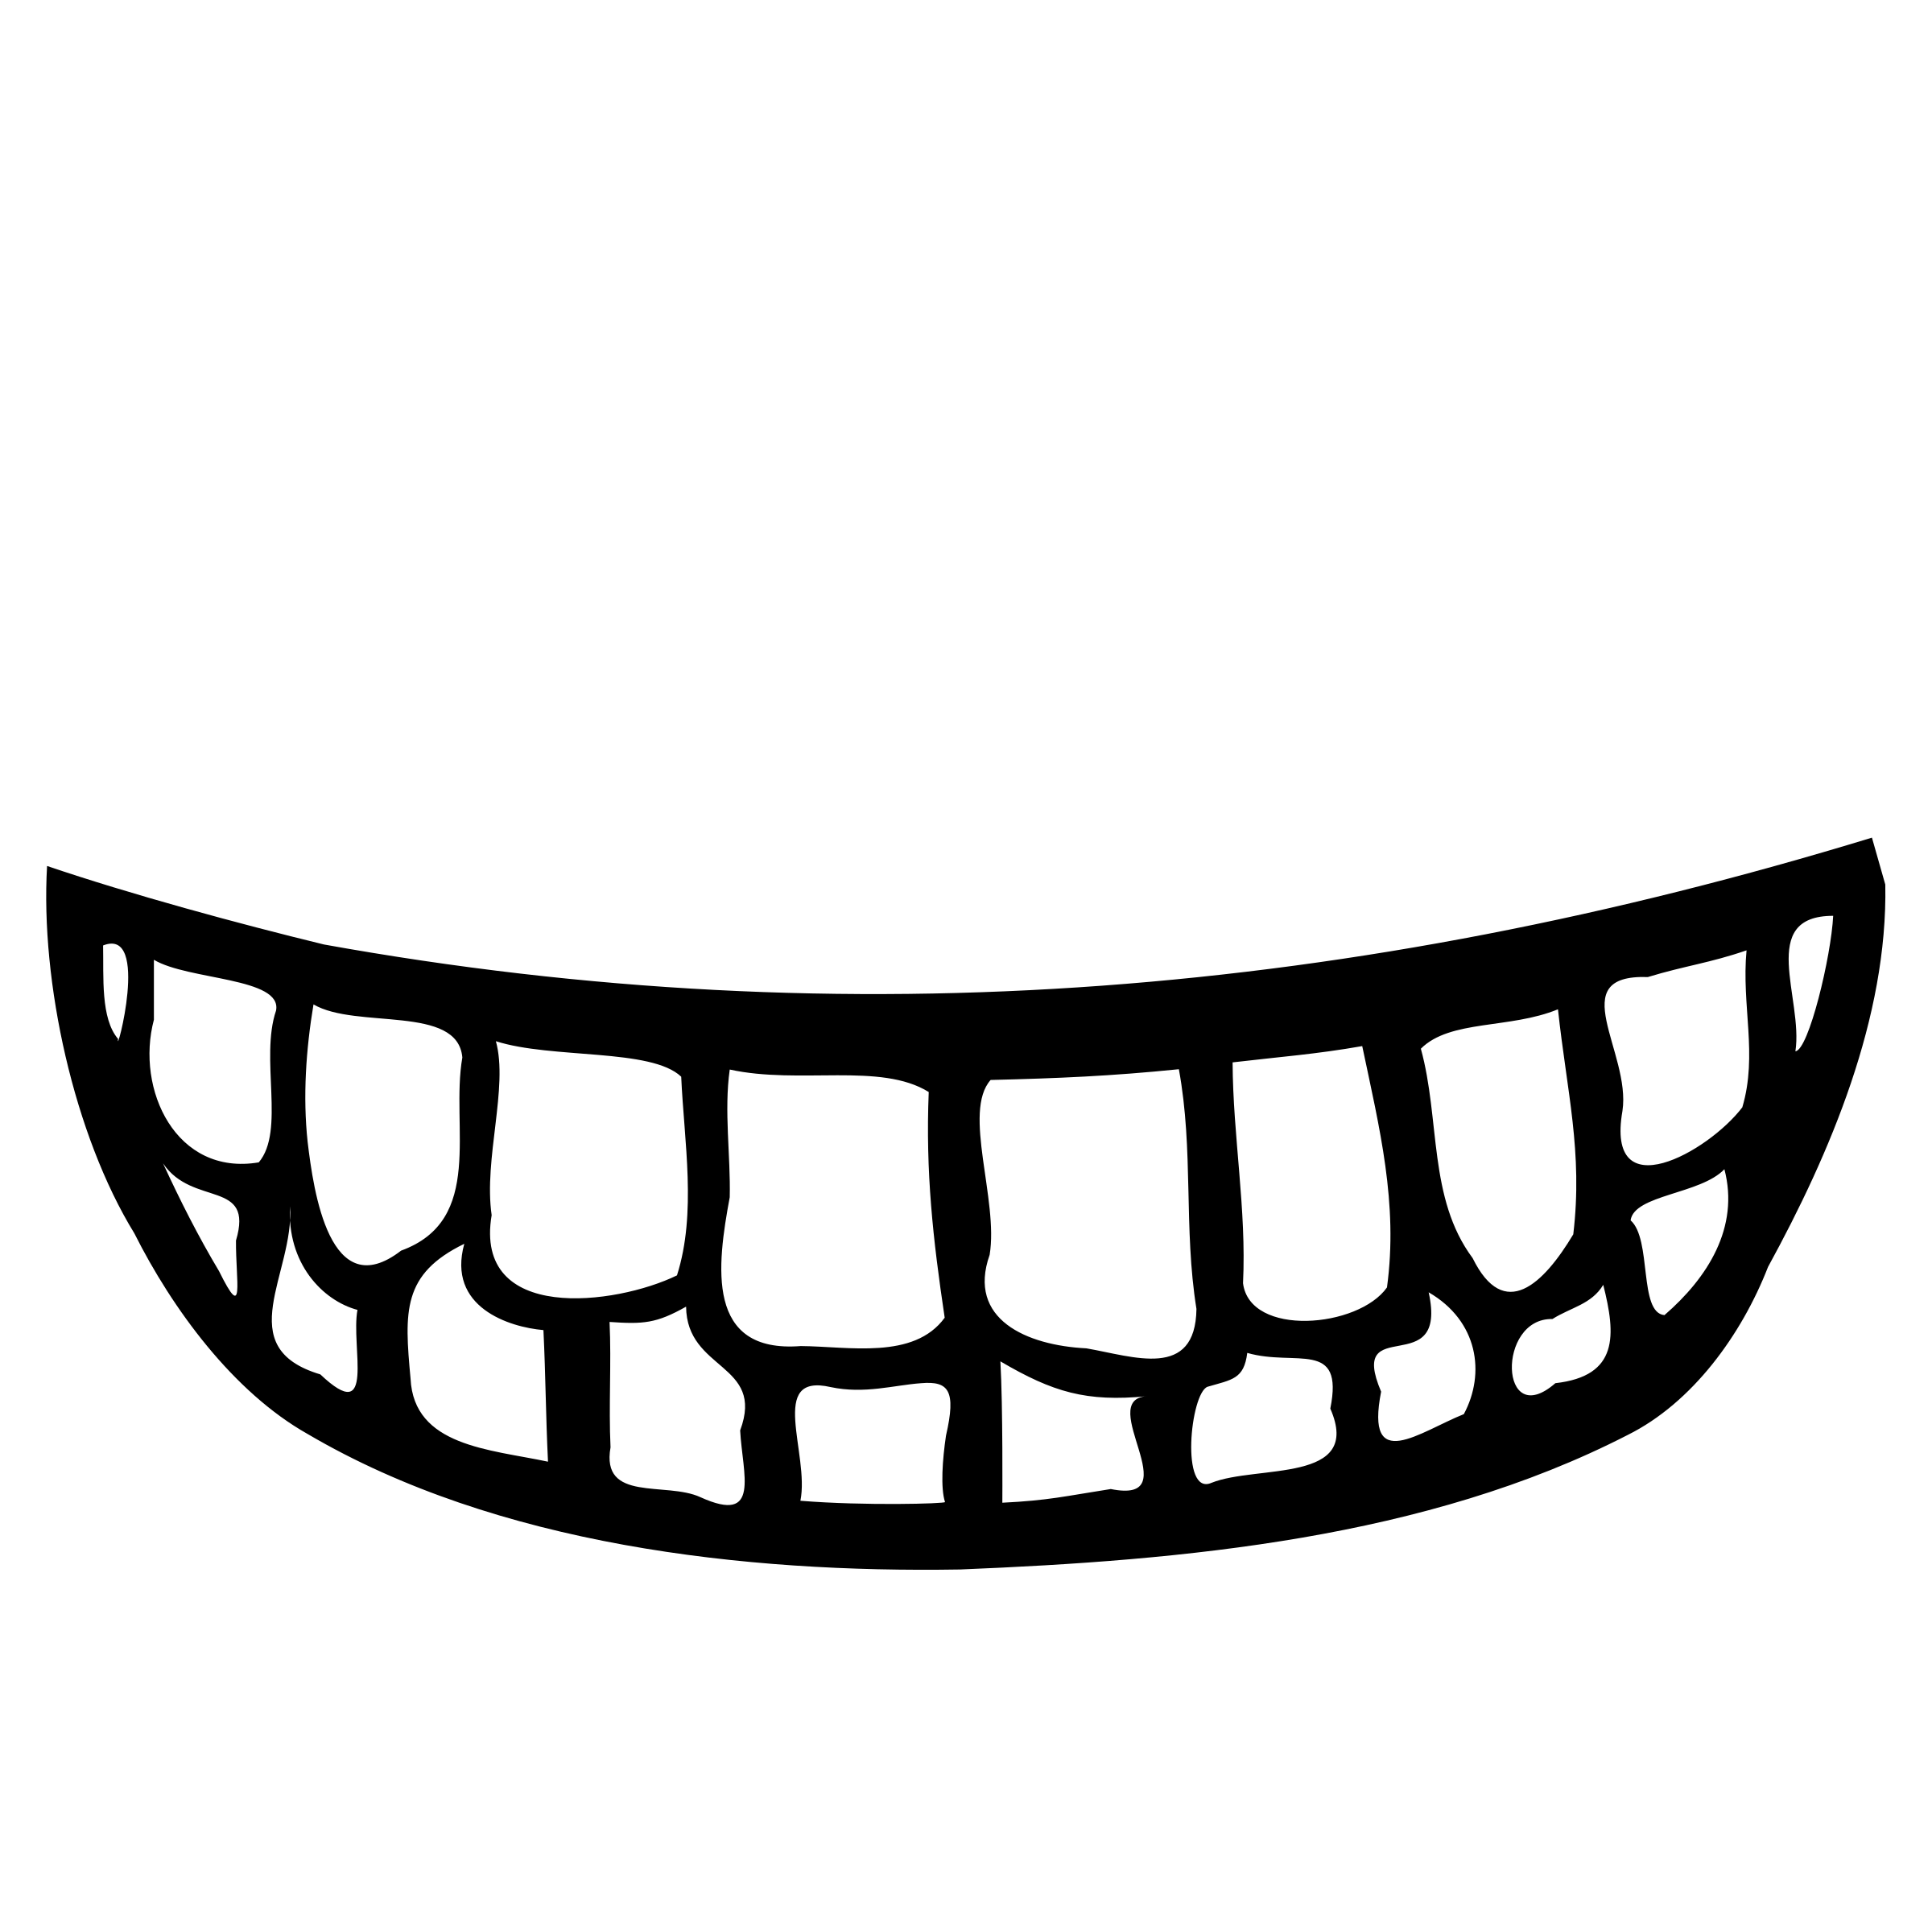 Angry teeth clipart clip art transparent stock Angry Mouth Clipart   Free download best Angry Mouth Clipart on ... clip art transparent stock